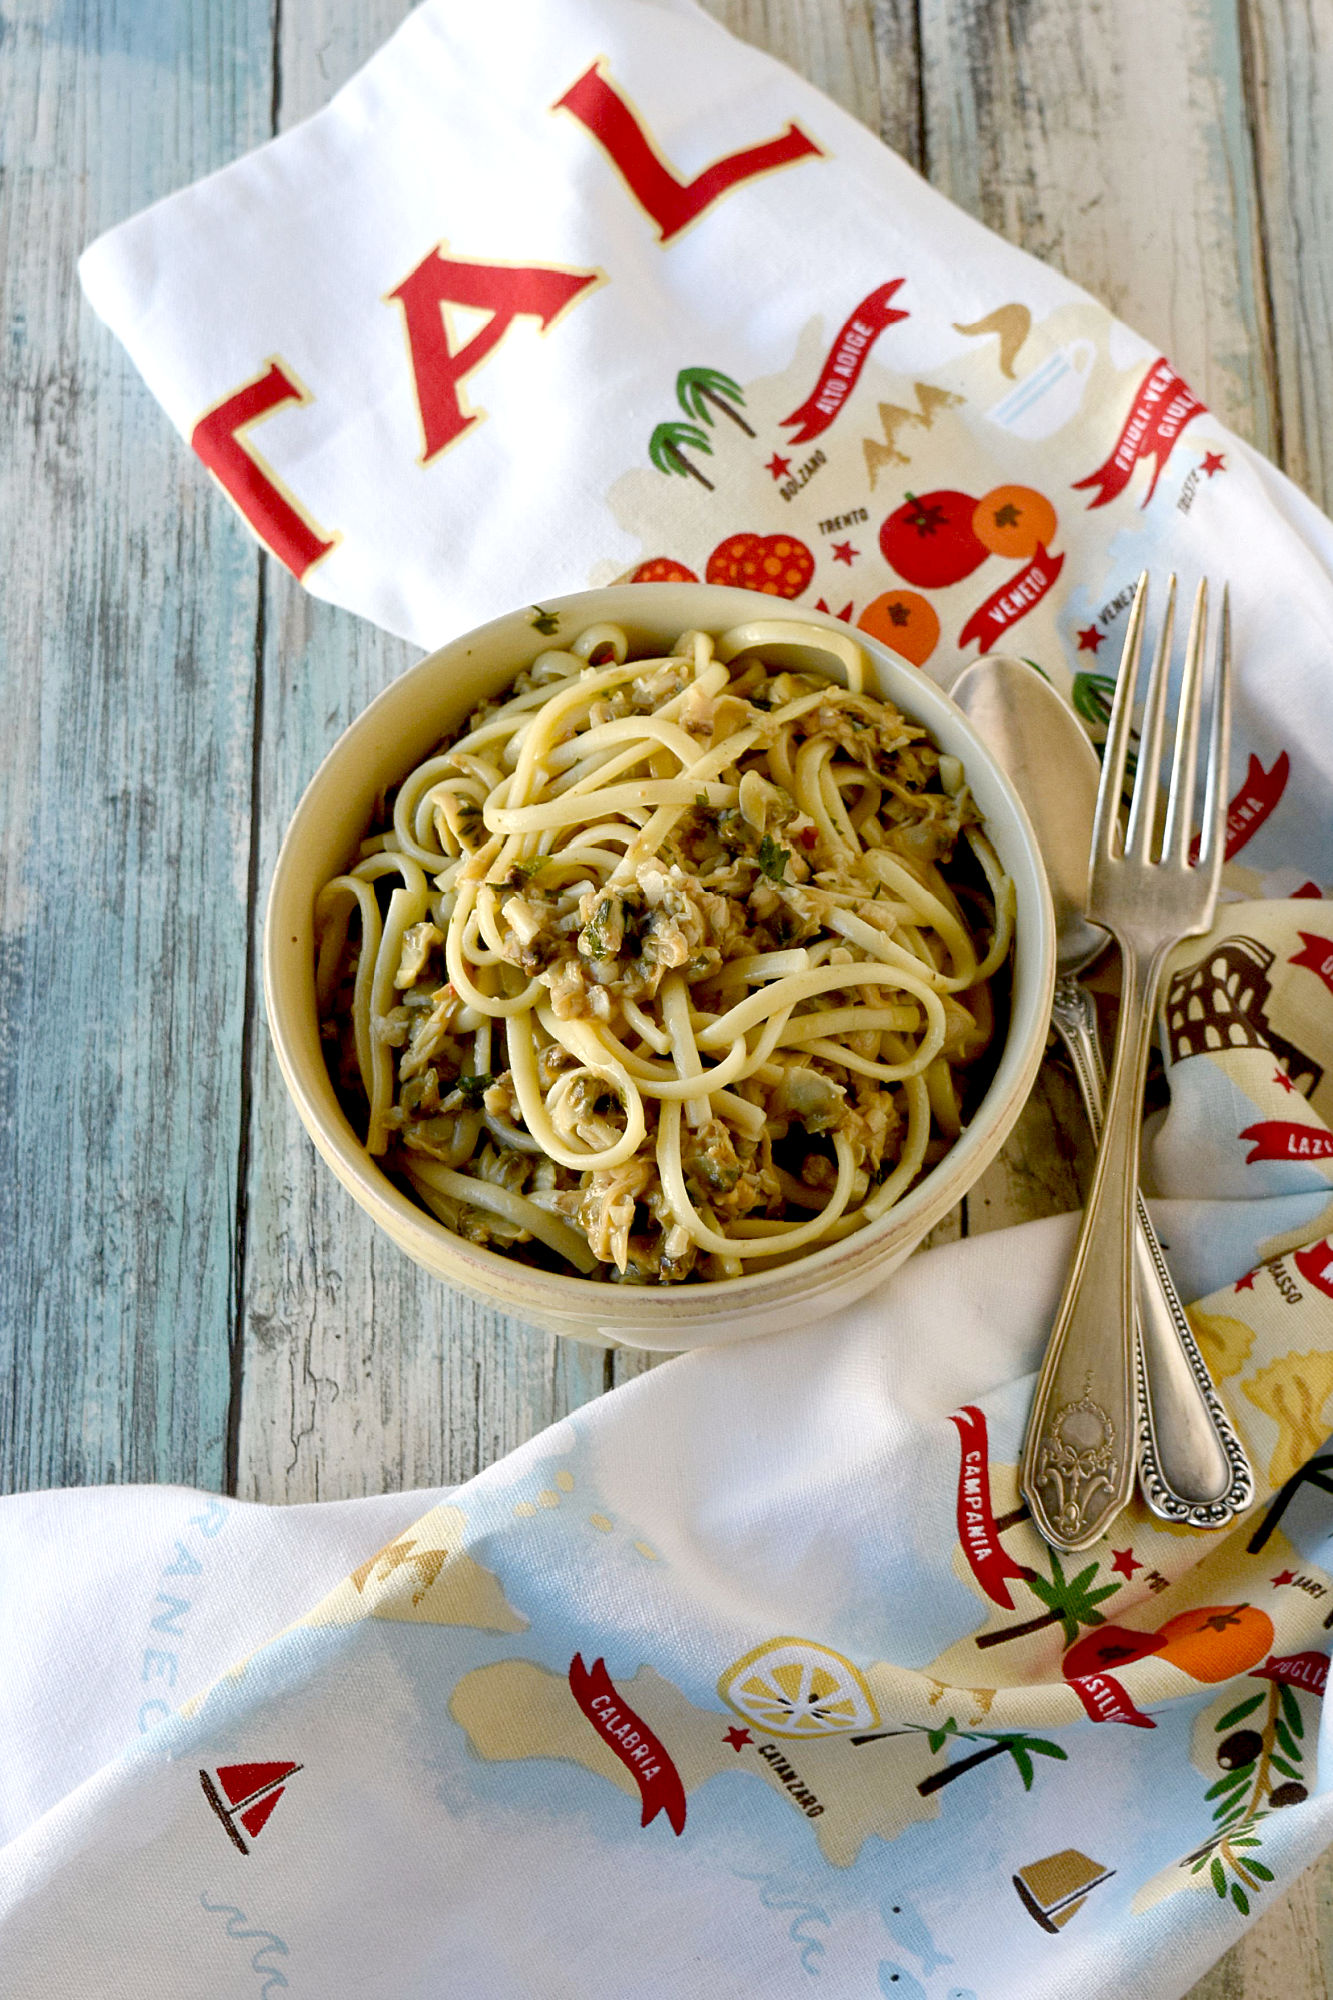 Easy Linguine with Clam Sauce uses pantry ingredients and comes together in a snap! It's perfect for those busy weeknights and even fancy enough for a date dinner! #OurFamilyTable